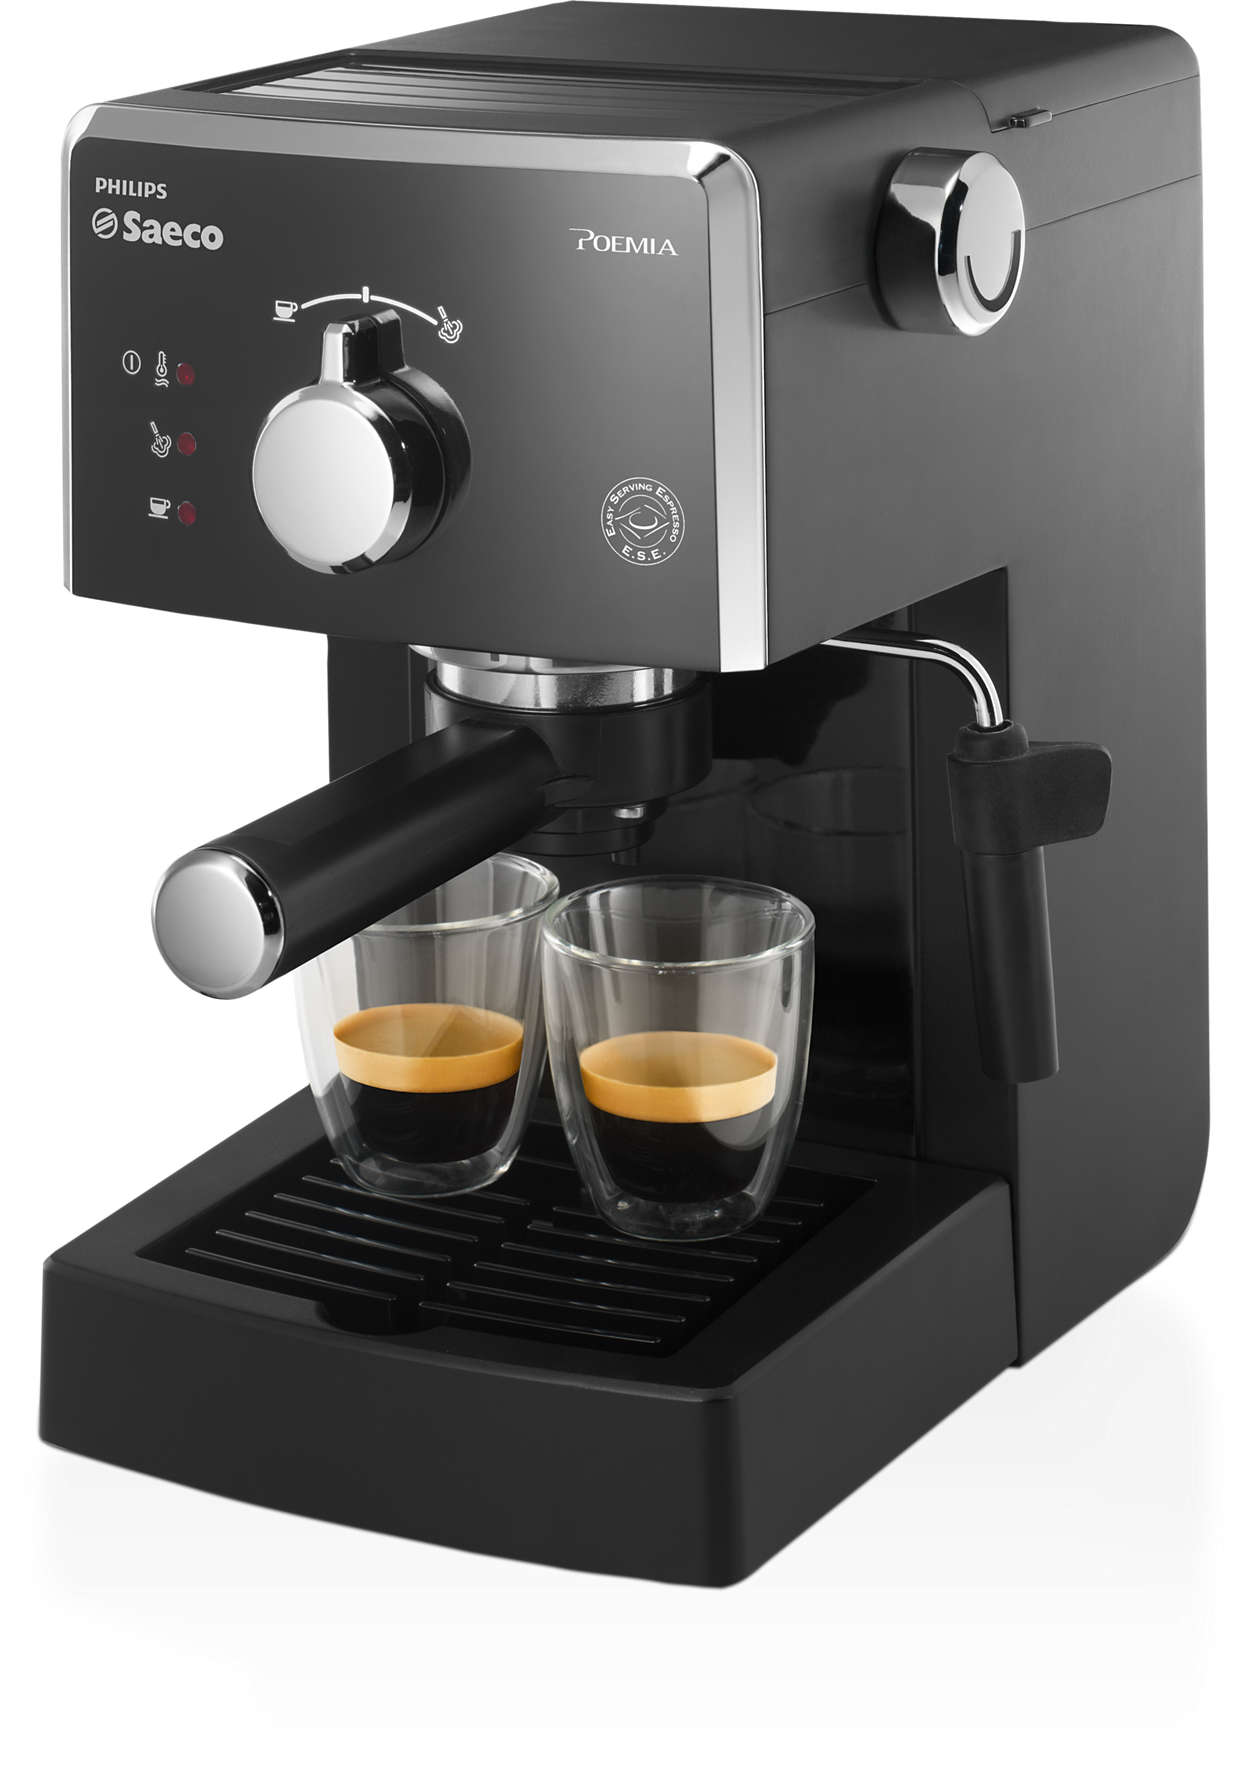 poemia manual espresso machine hd8323 01 saeco. Black Bedroom Furniture Sets. Home Design Ideas